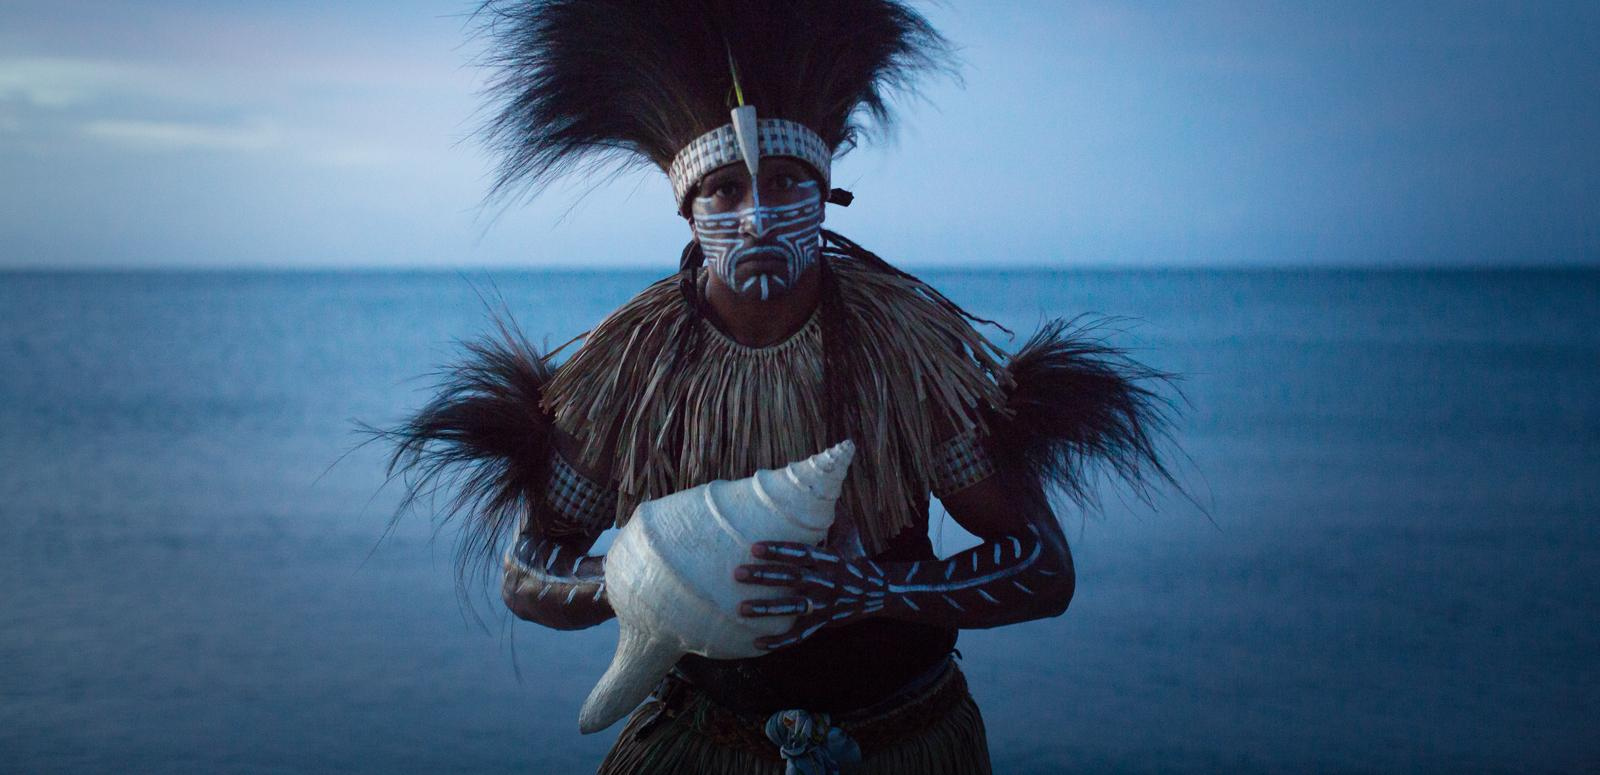 Image featuring Indigenous Francis Williams of the Naygayiw Gigi Dance Troupe in costume standing in front of the sea